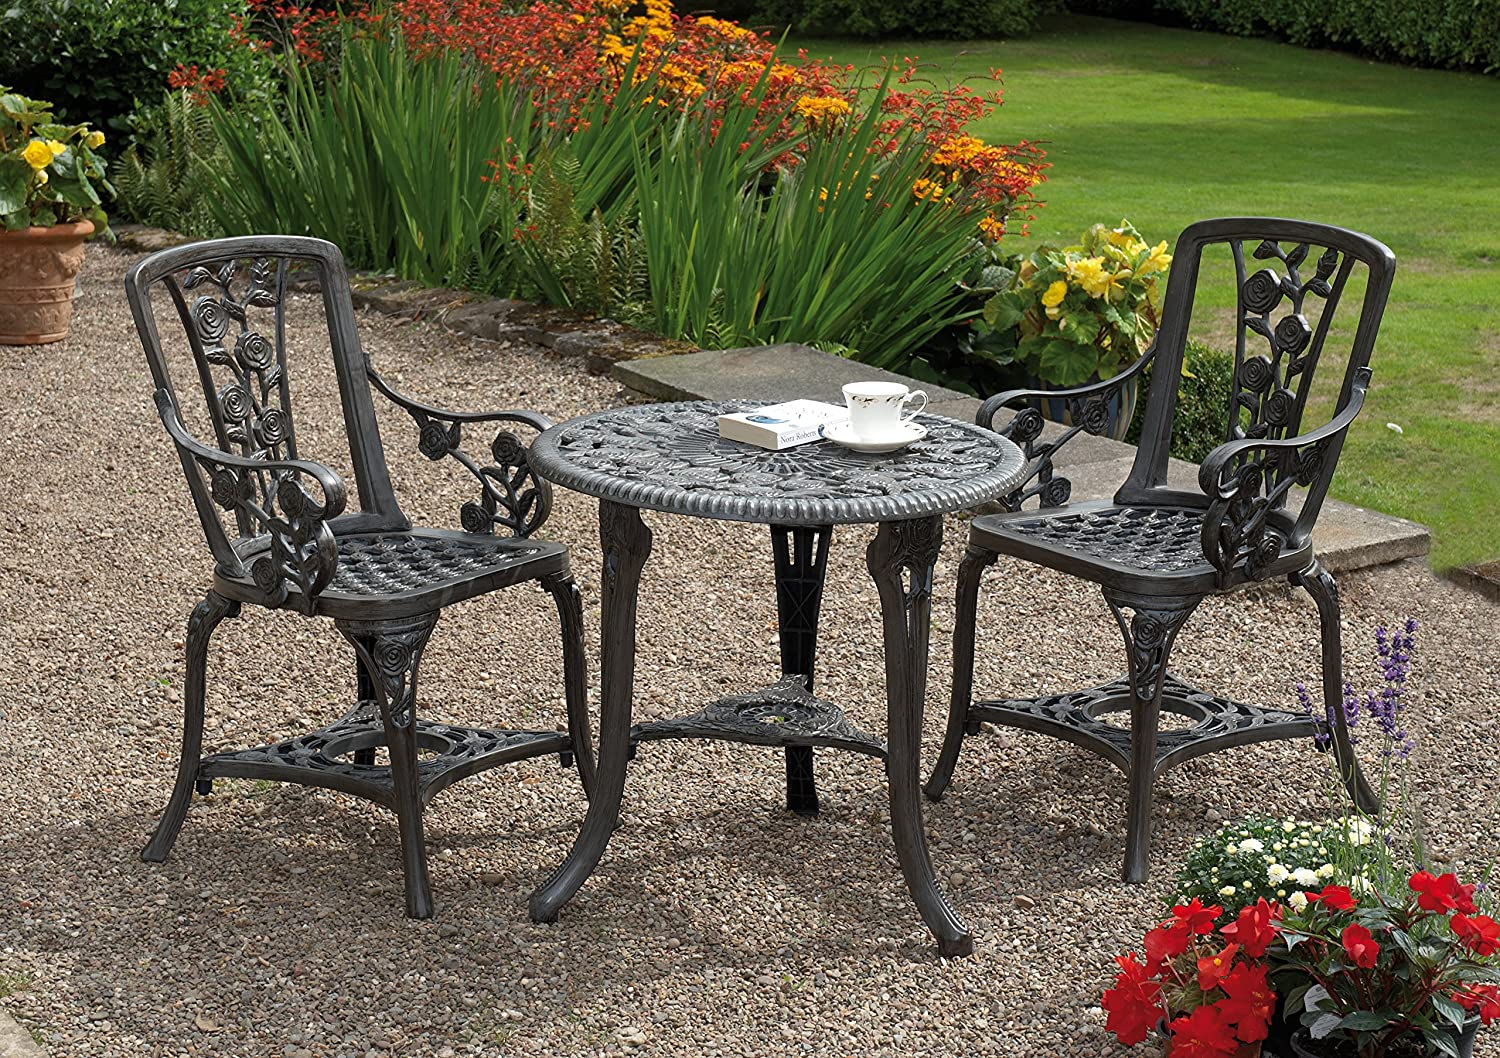 Gablemere 2 Seater Plastic Rose Design Patio Set With Round Bistro Table In  Gun Metal Grey Finish: Amazon.co.uk: Garden U0026 Outdoors